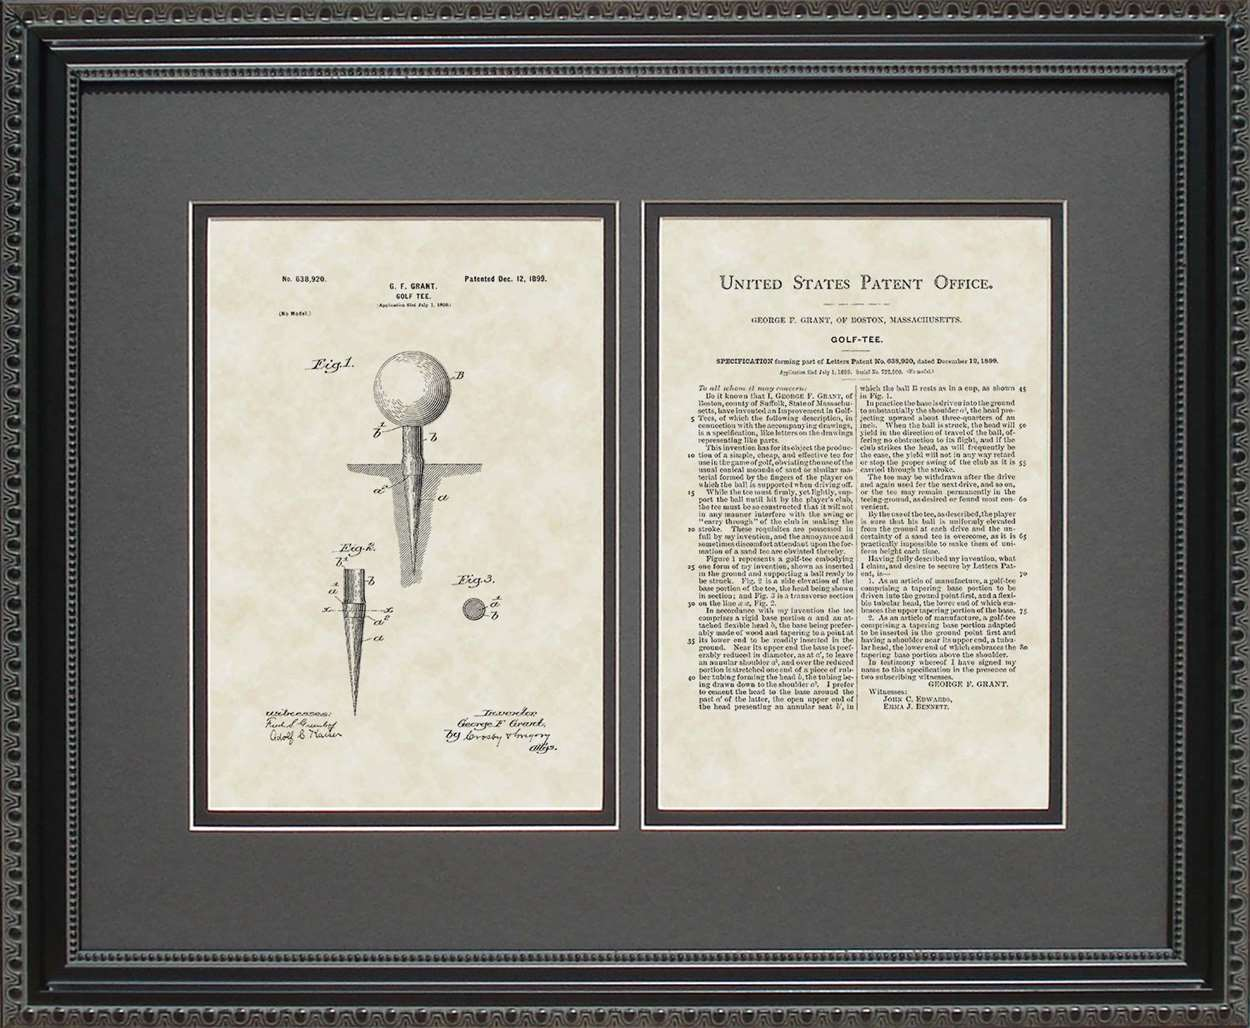 Golf Tee Patent, Art & Copy, Grant, 1899, 16x20